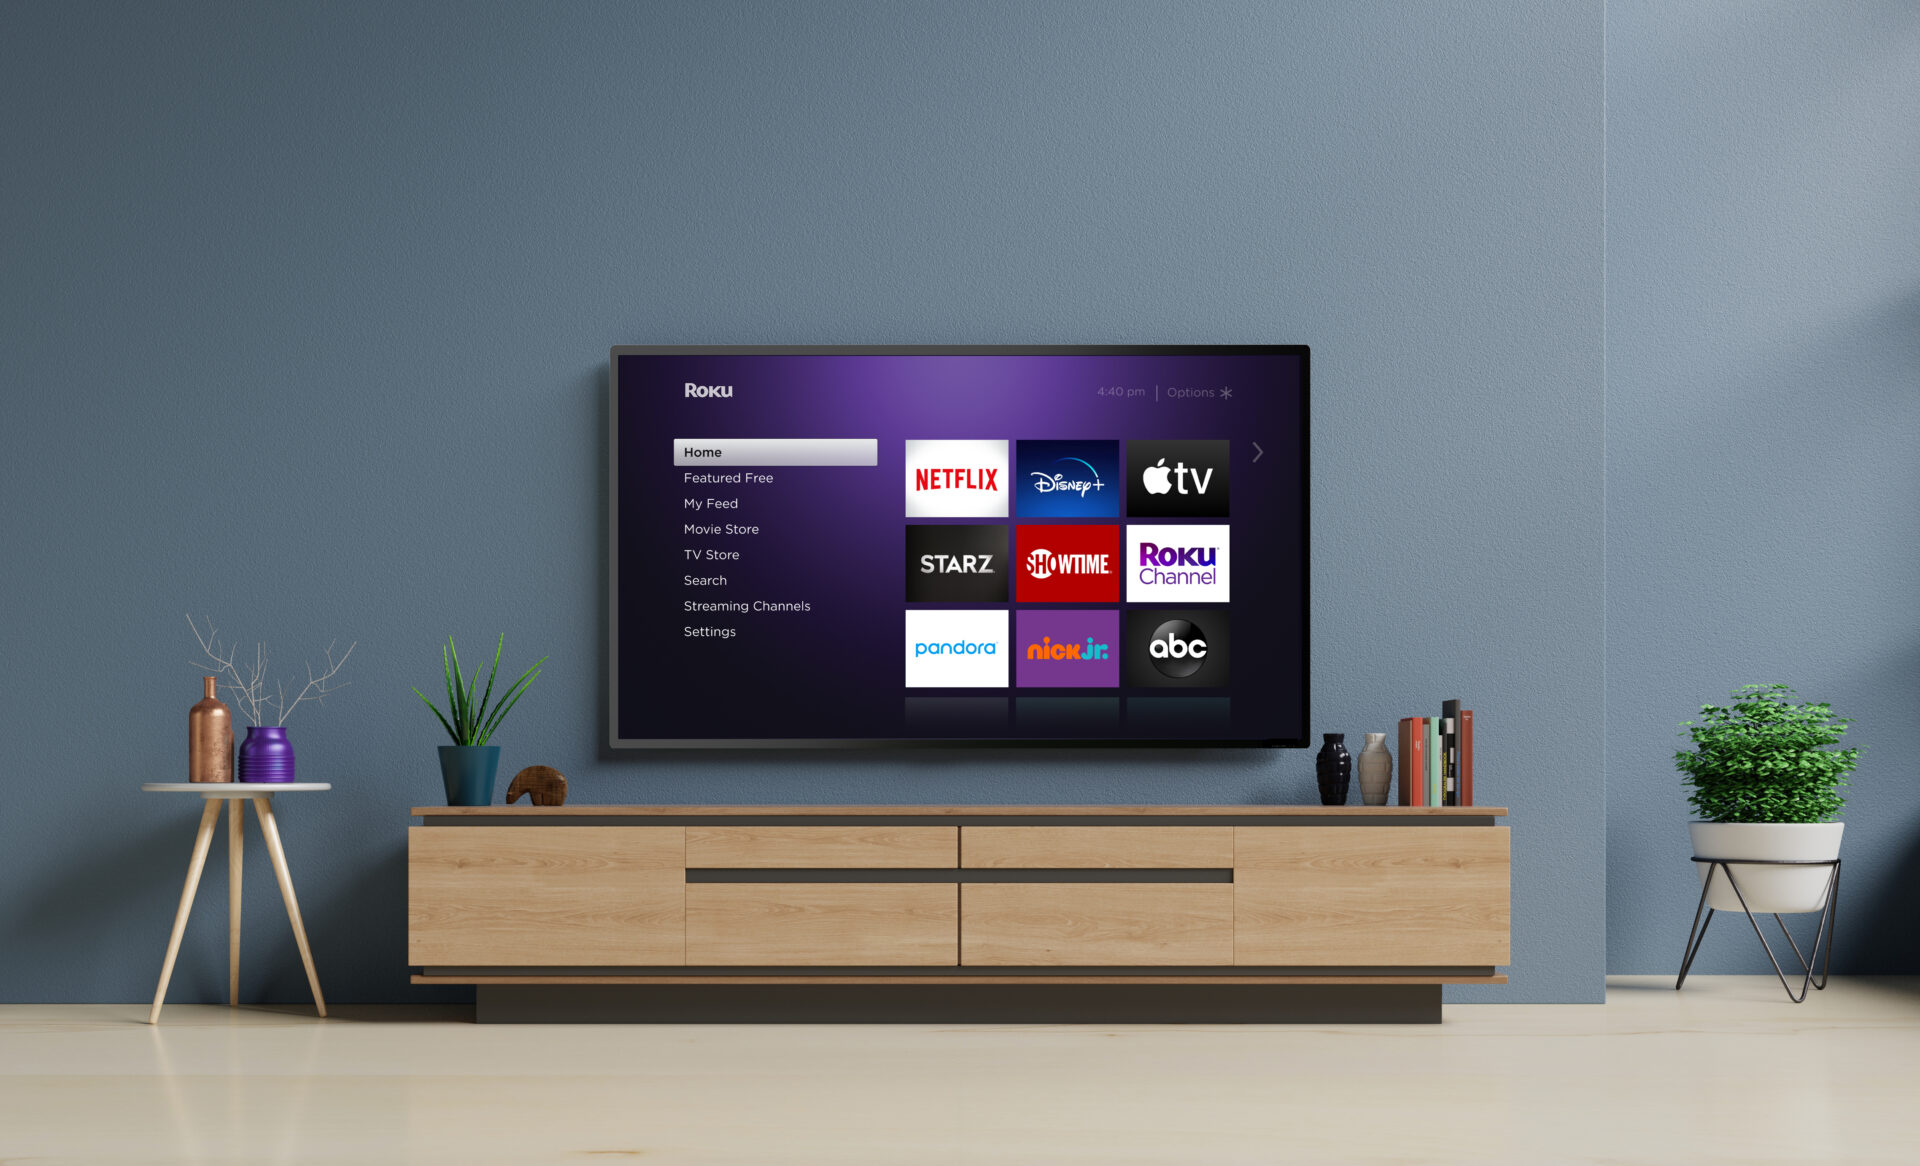 Movies come and go on streaming services. We can help you keep up with what to watch and when